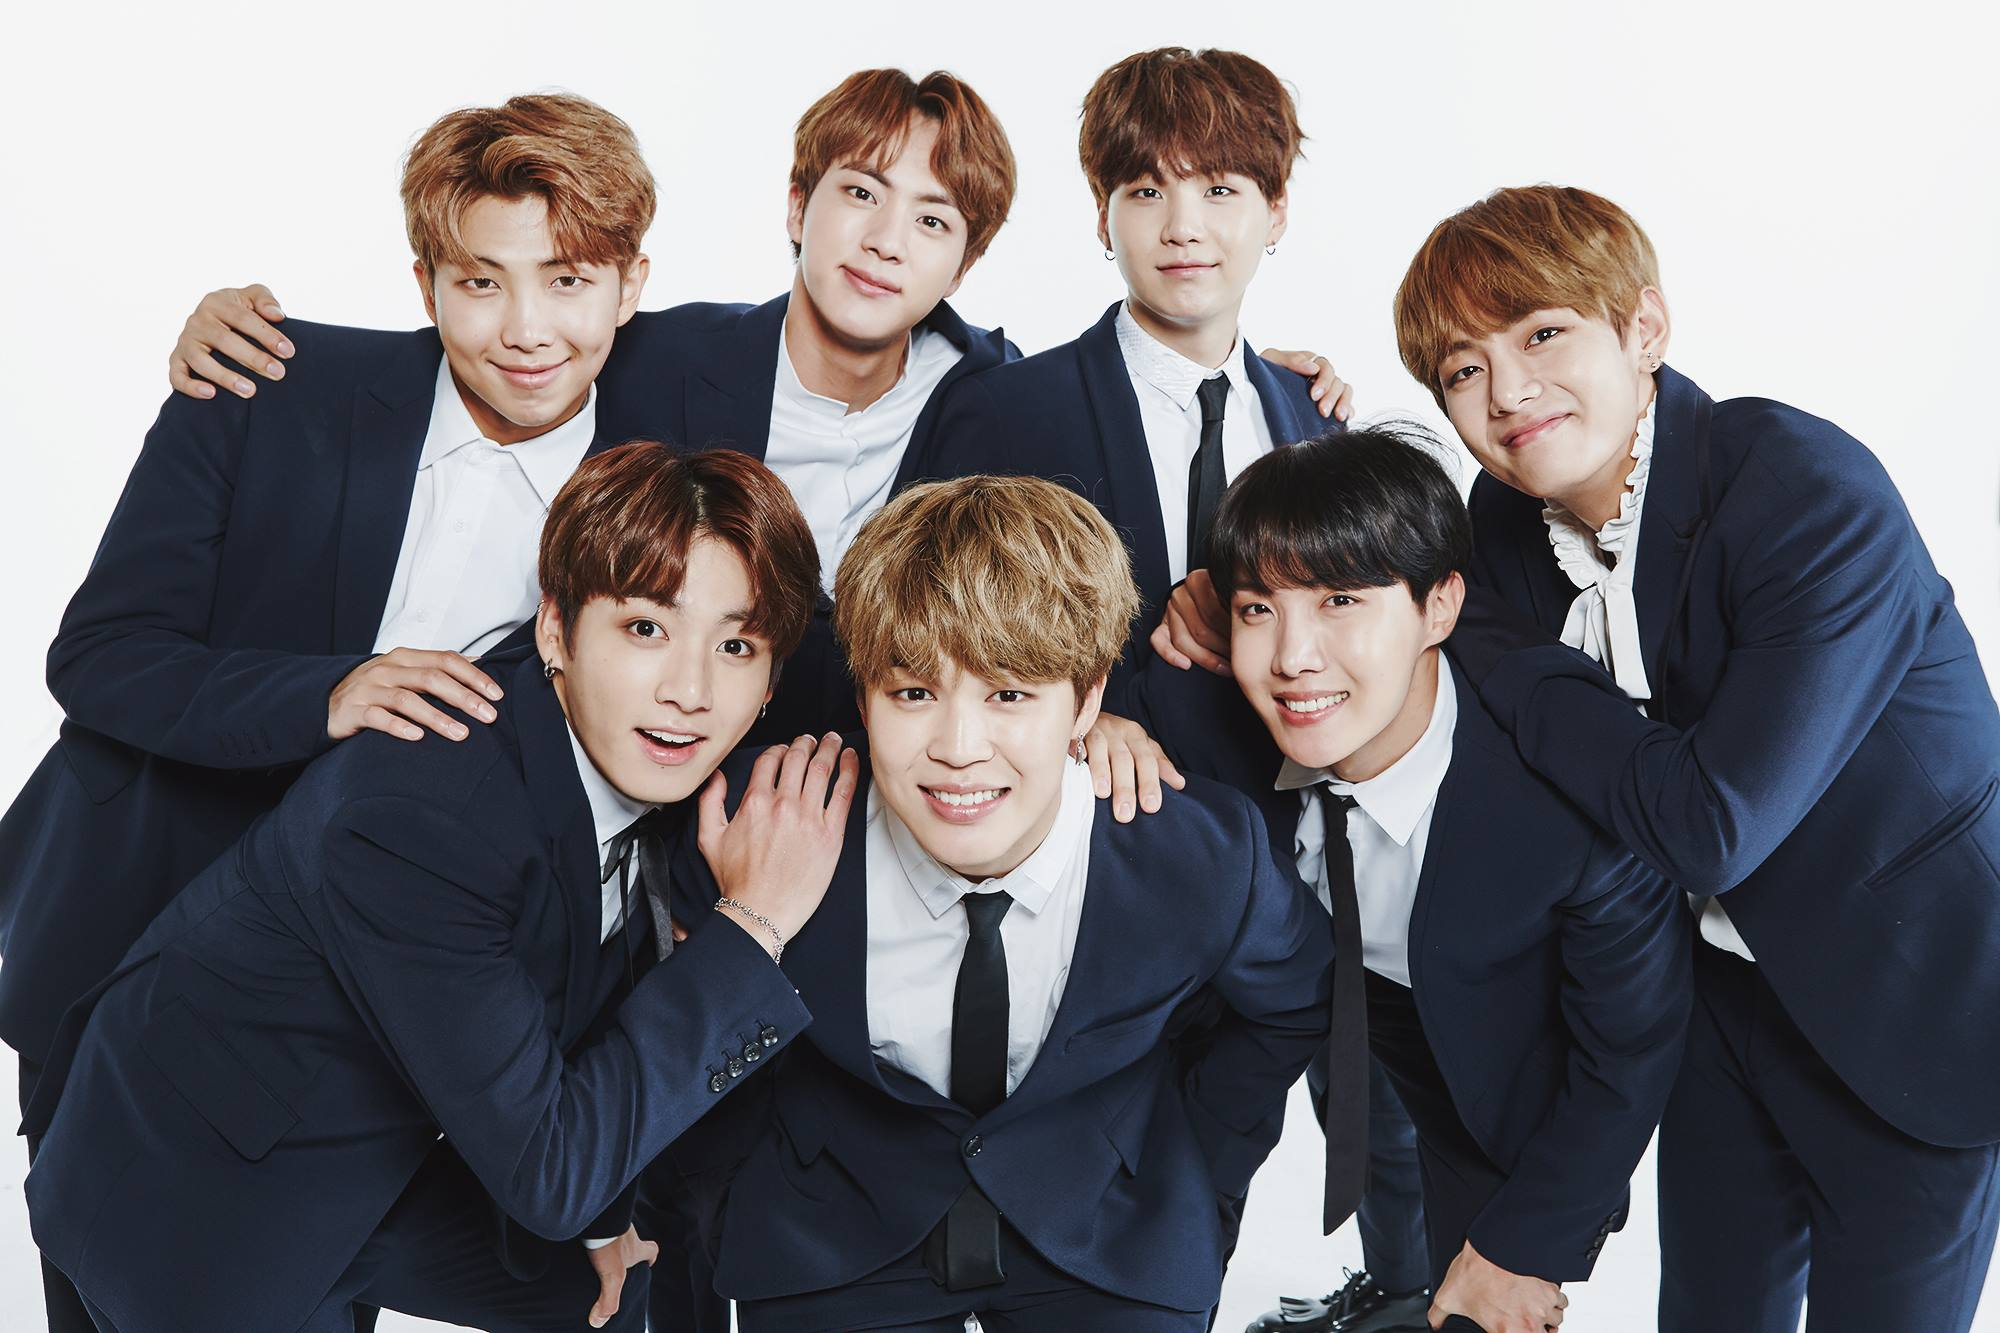 BTS announced as special guests attending 2017 American Music Awards